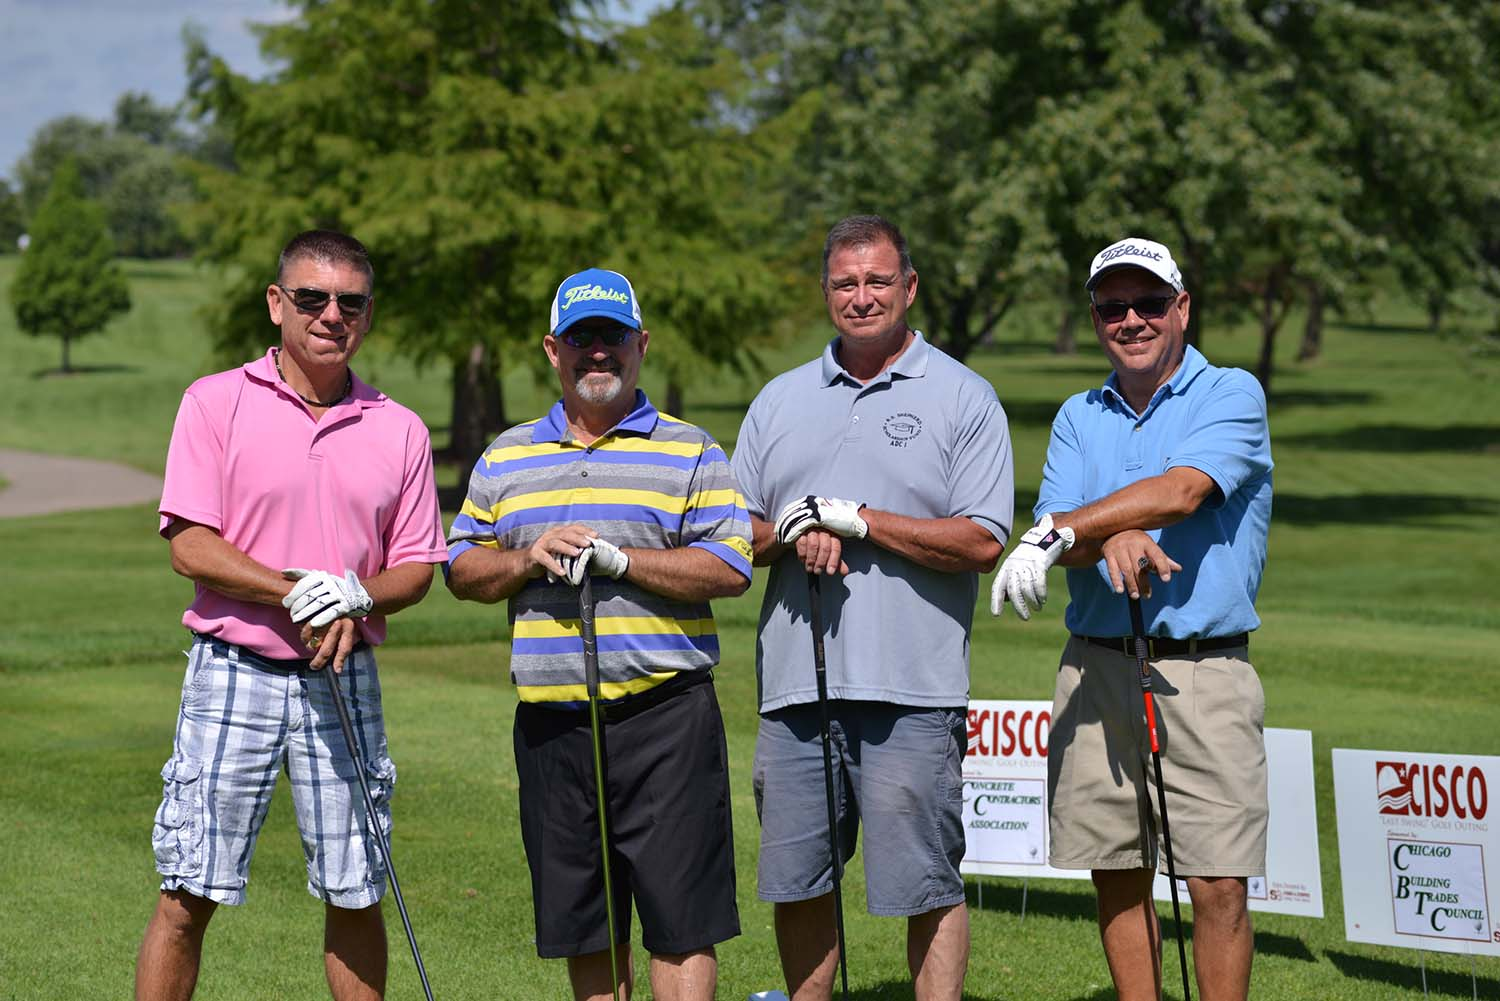 CISCO's Last Swing annual golf outing